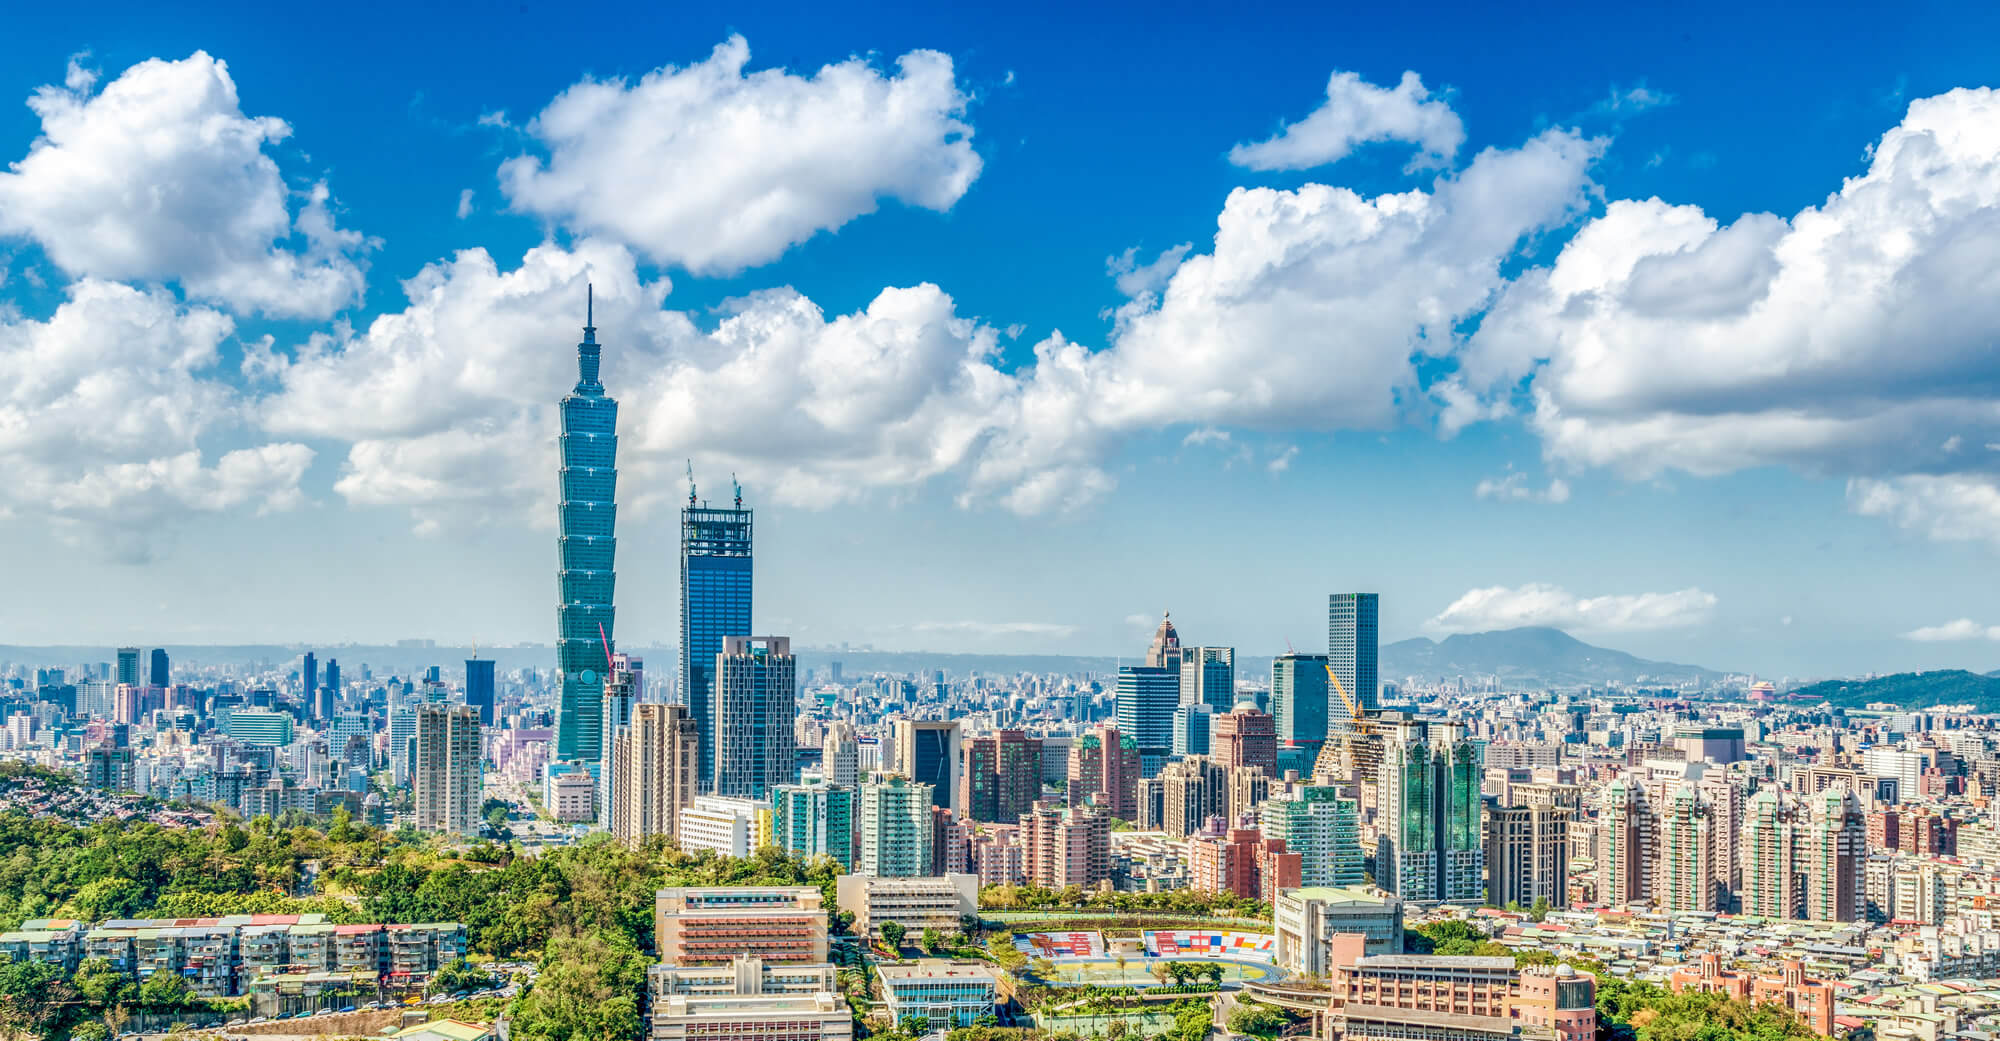 Panoramic of Taipei city, Taiwan